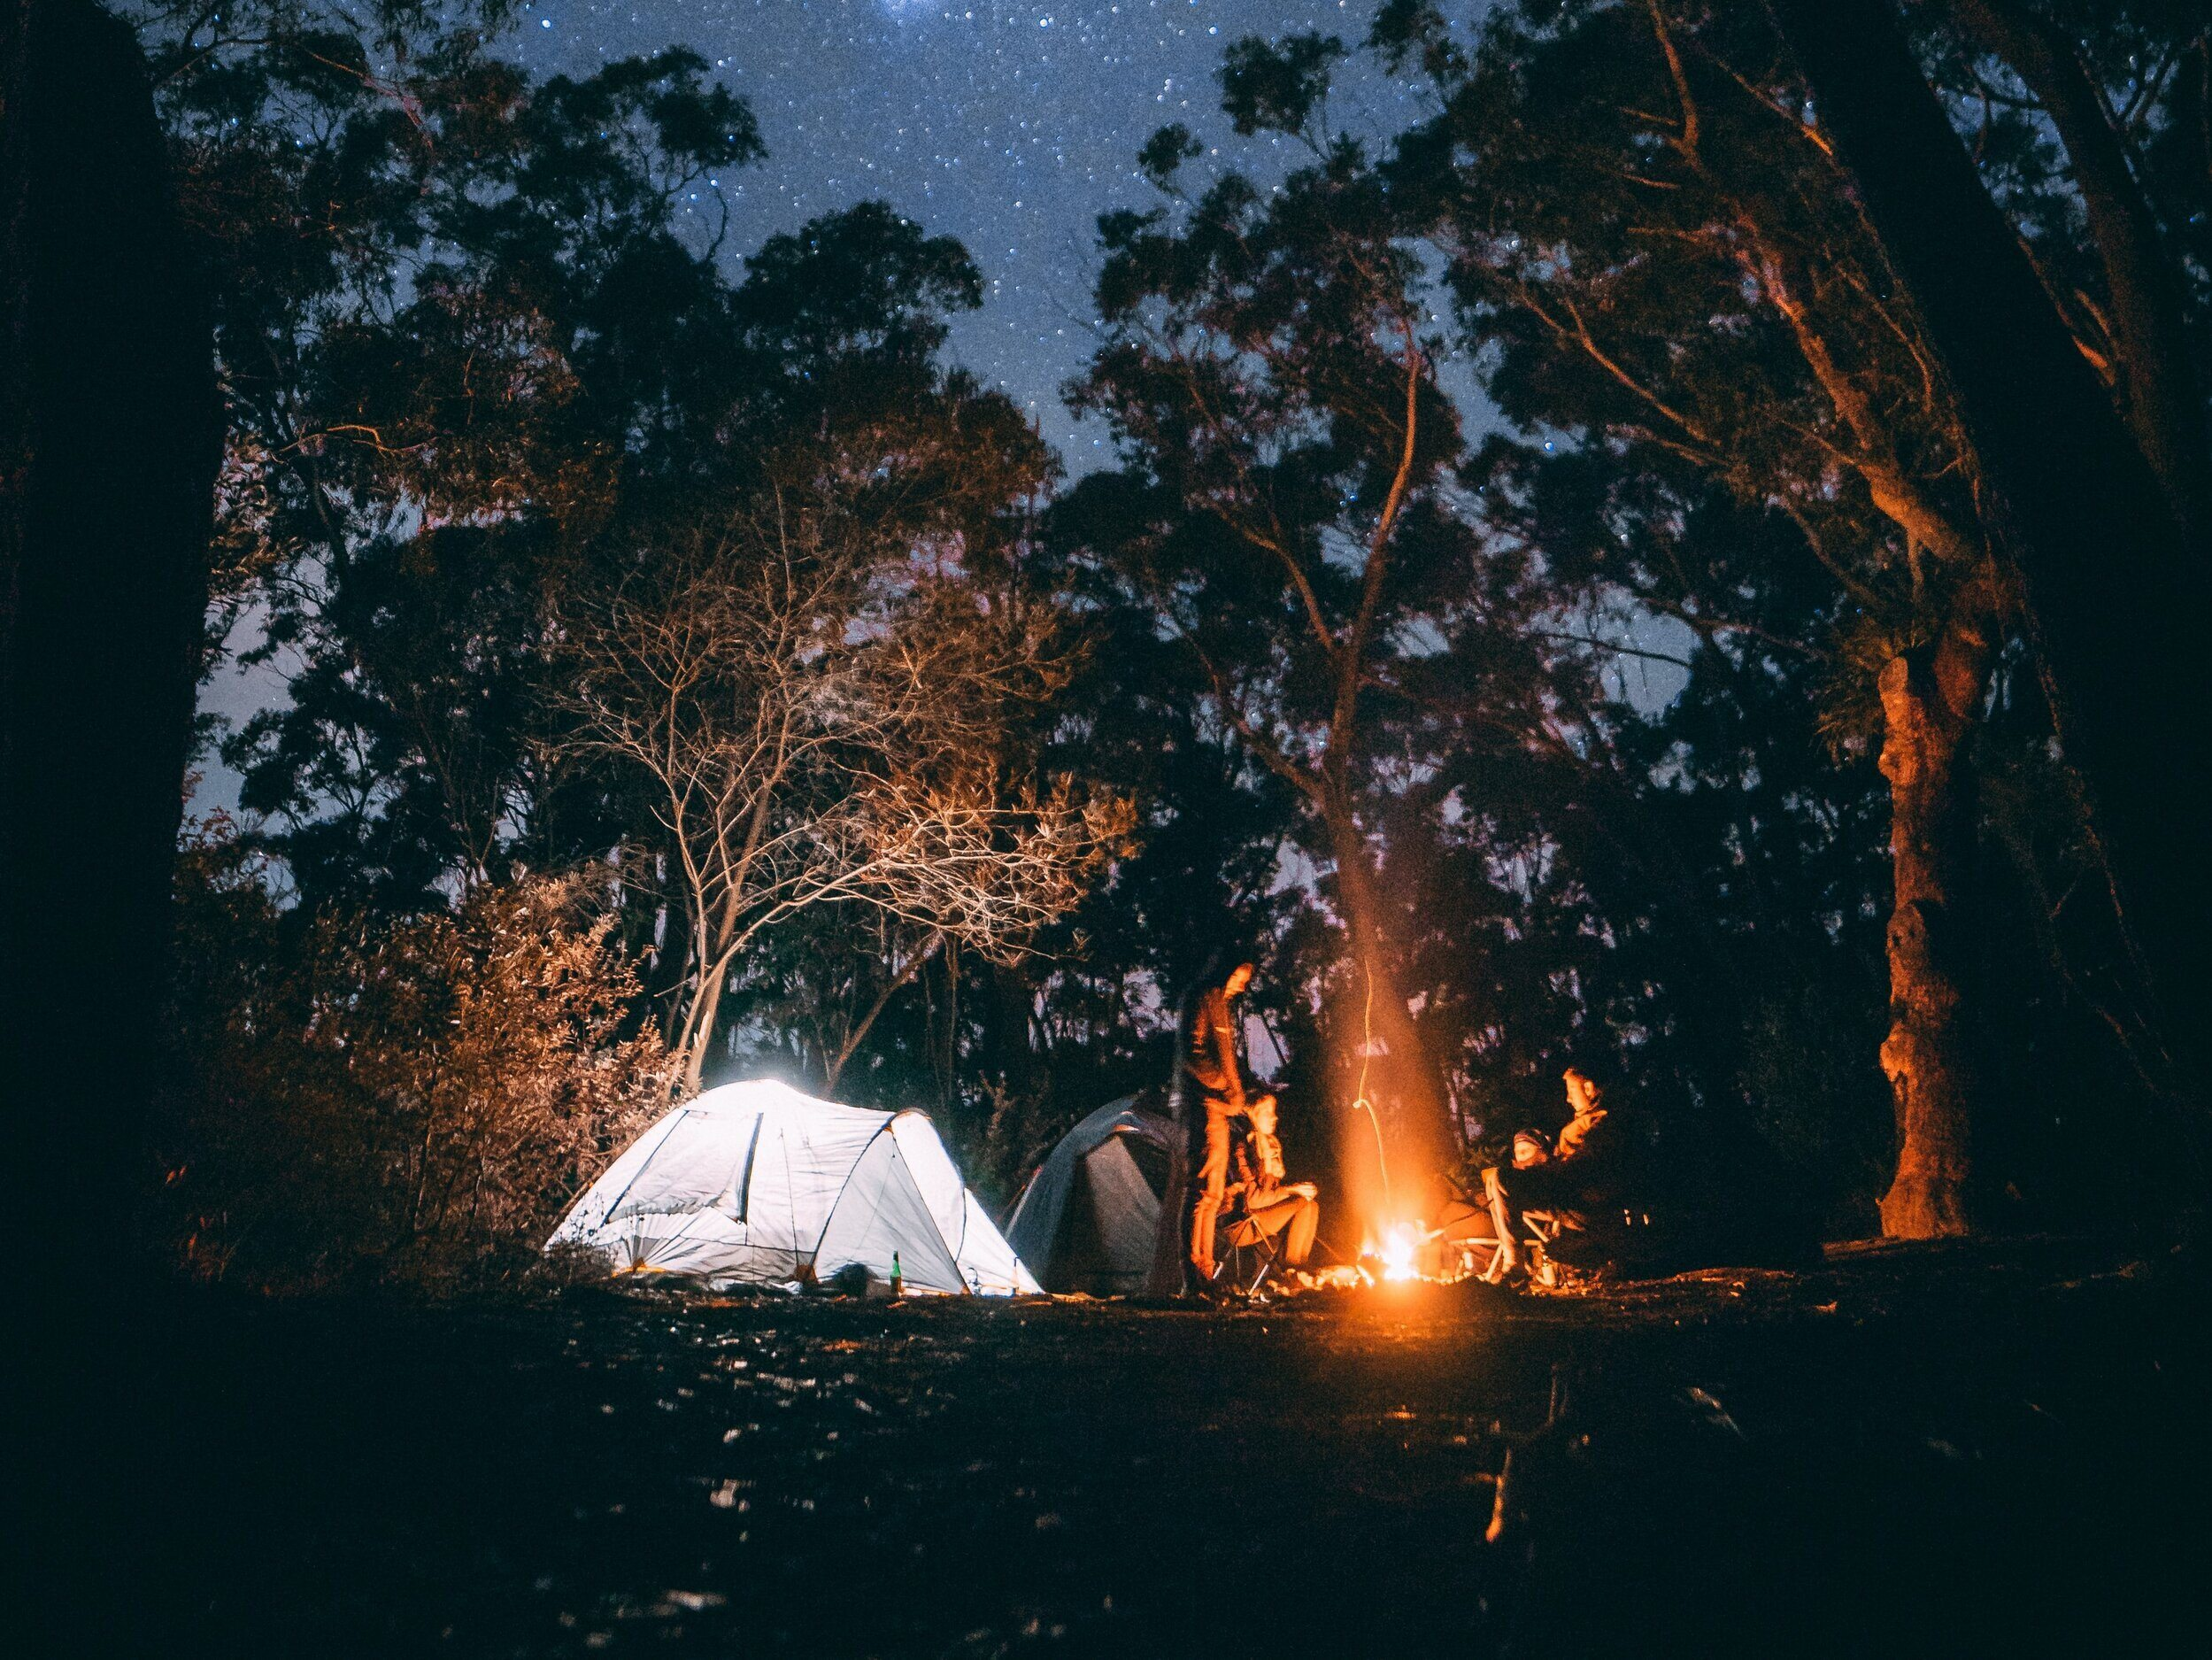 37 North Expeditions Overnight Beginner Backpacking Adventure